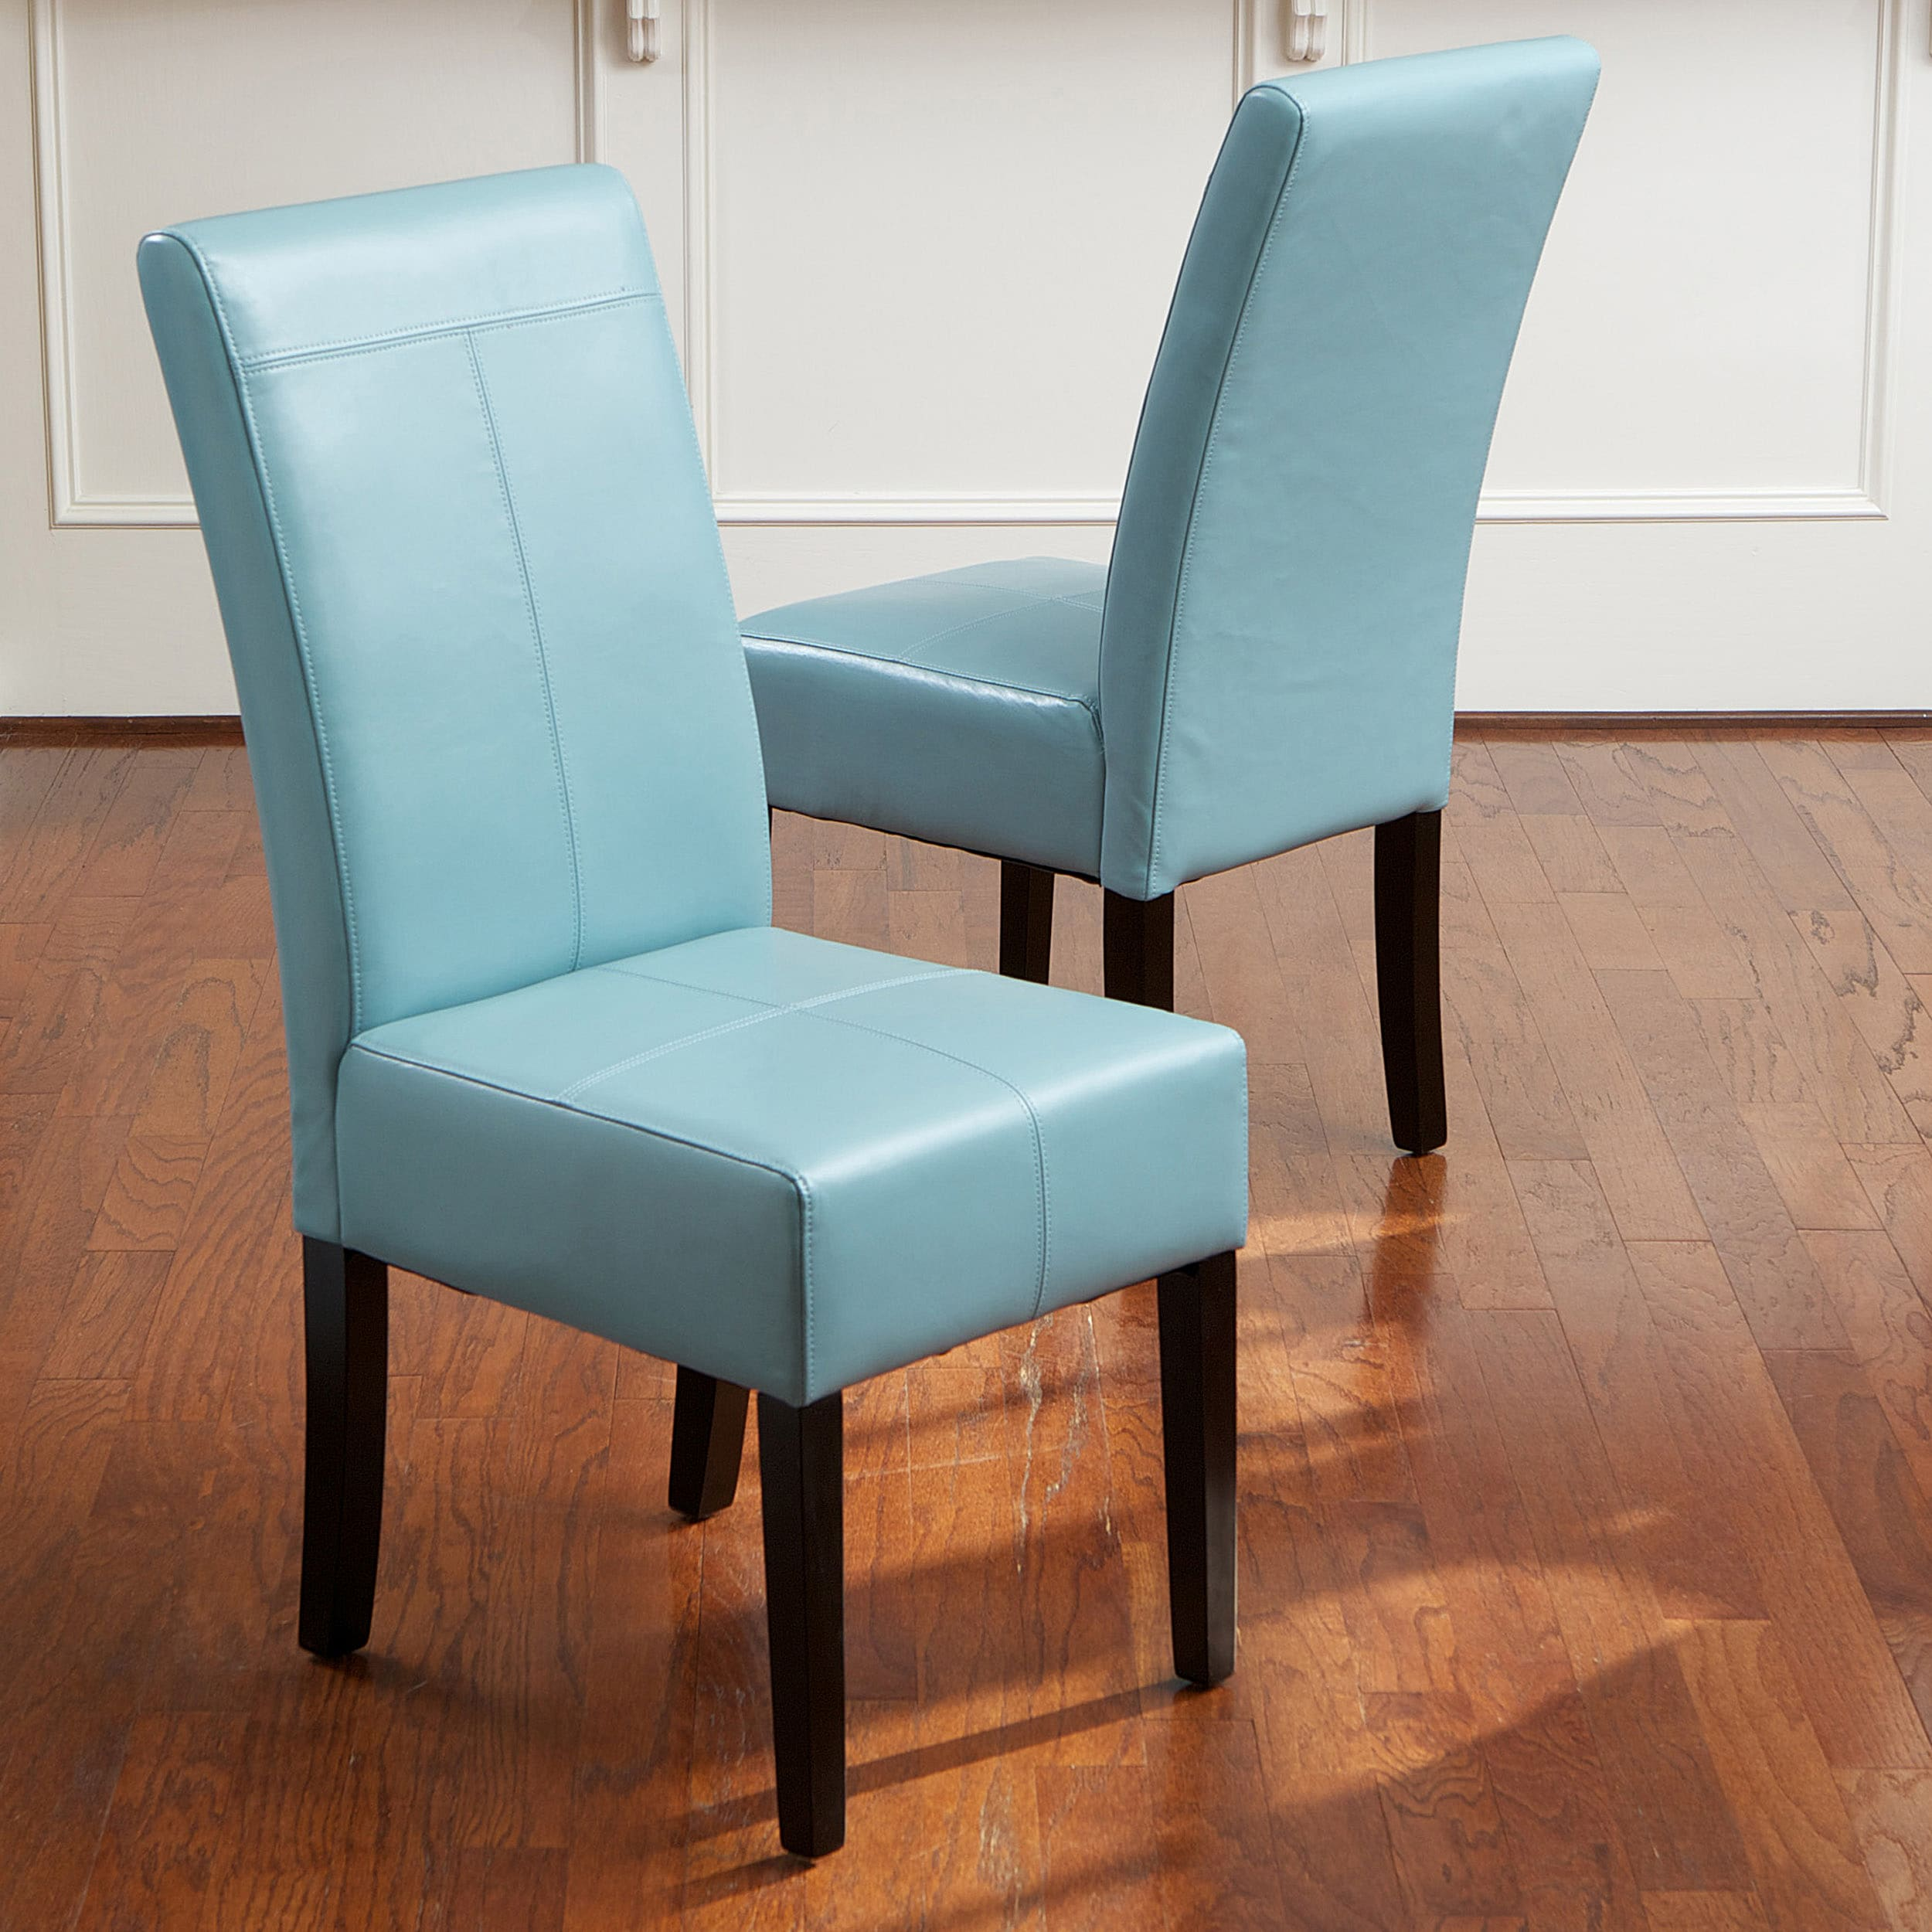 T stitch teal blue leather dining chairs set of 2 by christopher knight home